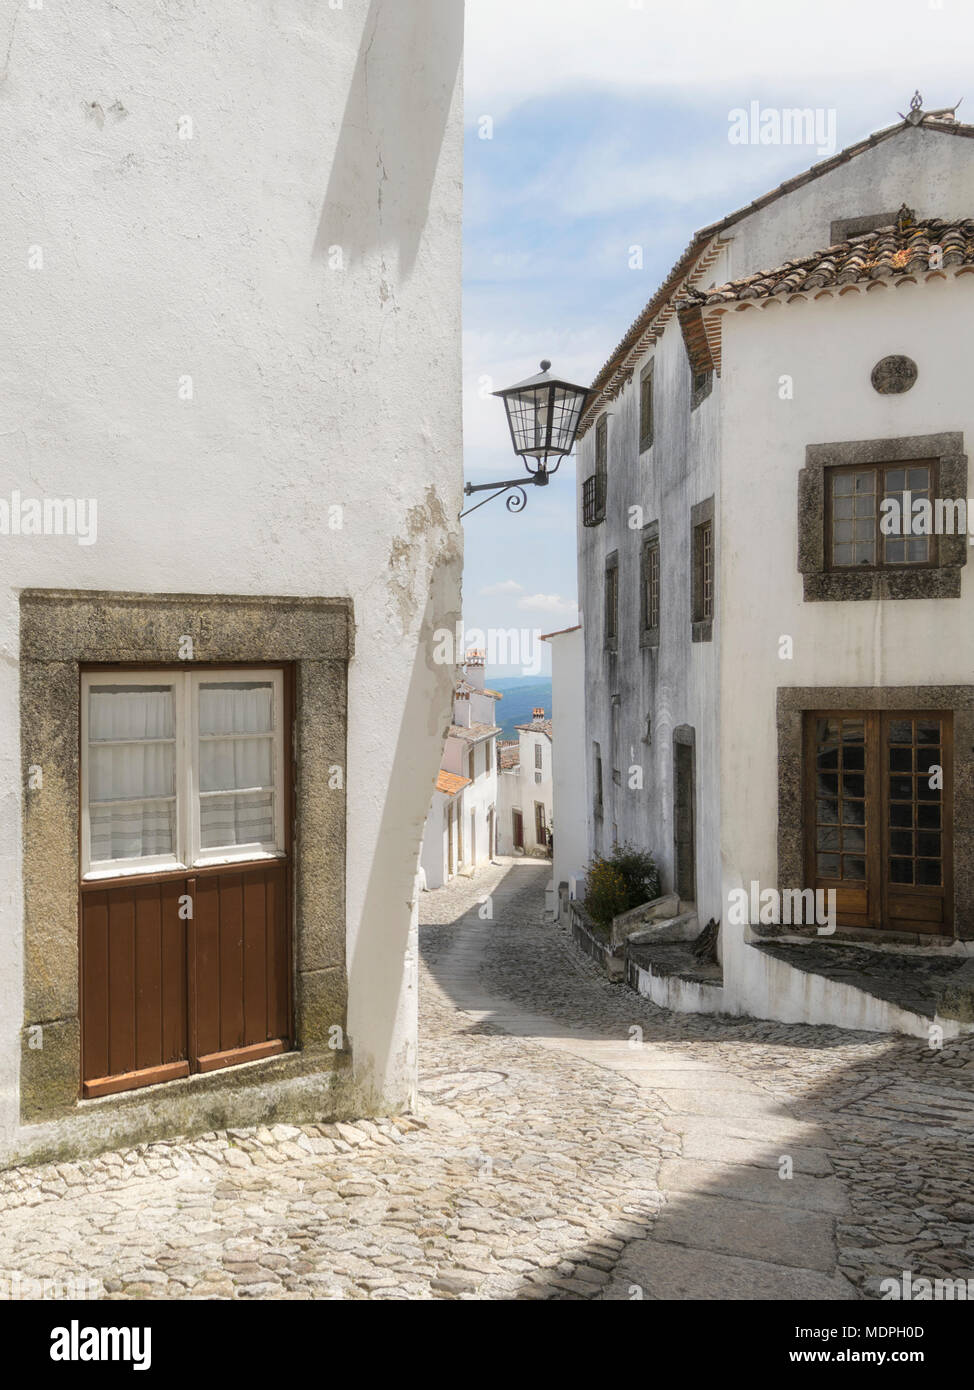 Labyrinths of old streets. - Stock Image